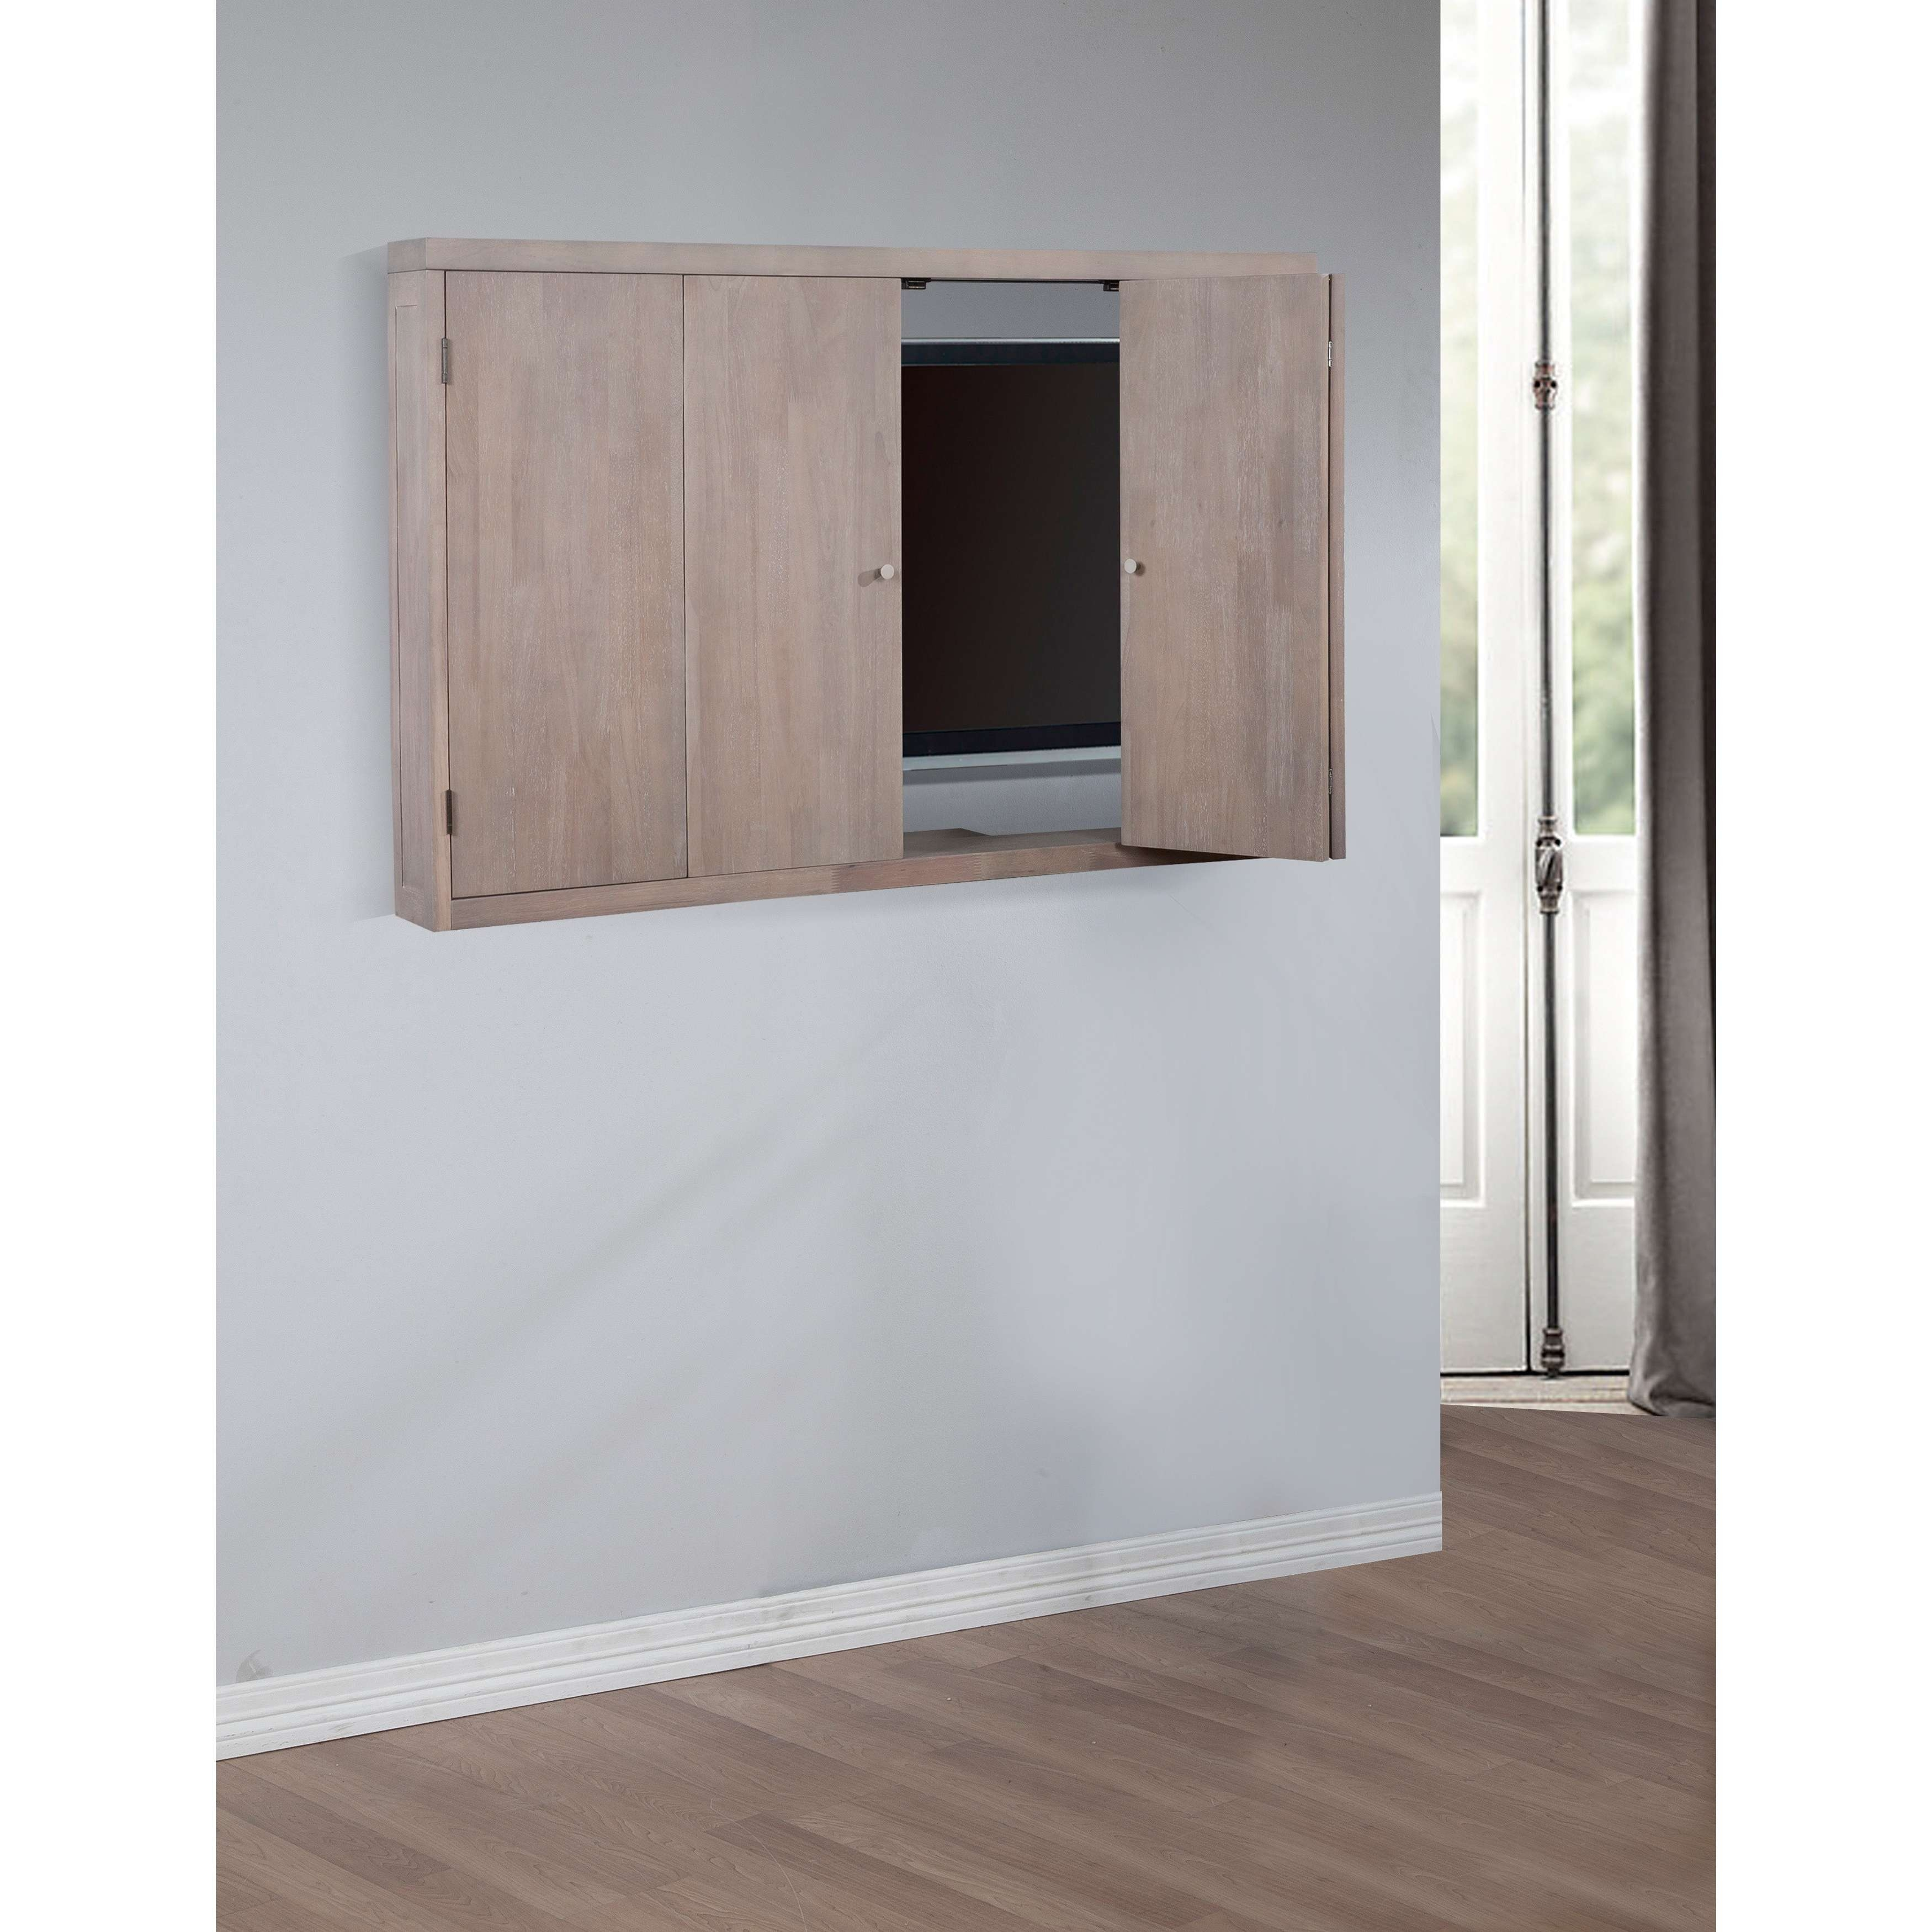 Furniture Wall Mounted Living Room Unit Tv Cabinet With Door And In Wall Mounted Tv Cabinets With Sliding Doors (View 10 of 20)